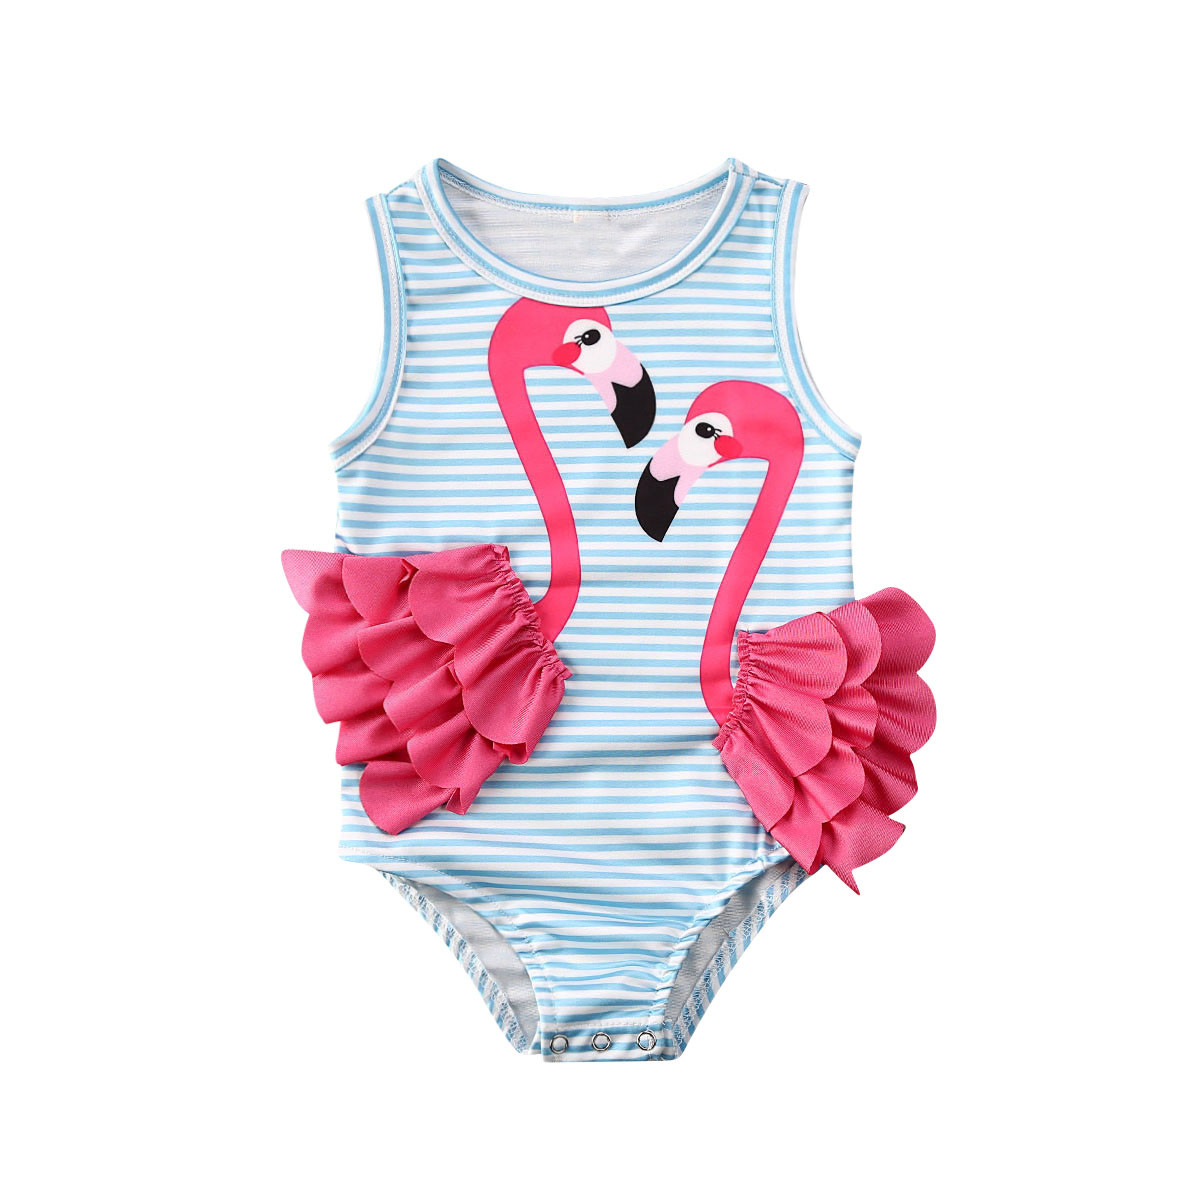 Kid Girl Children One-Piece Swimsuit Bikini Swimwear Bathing Suit Beachwear